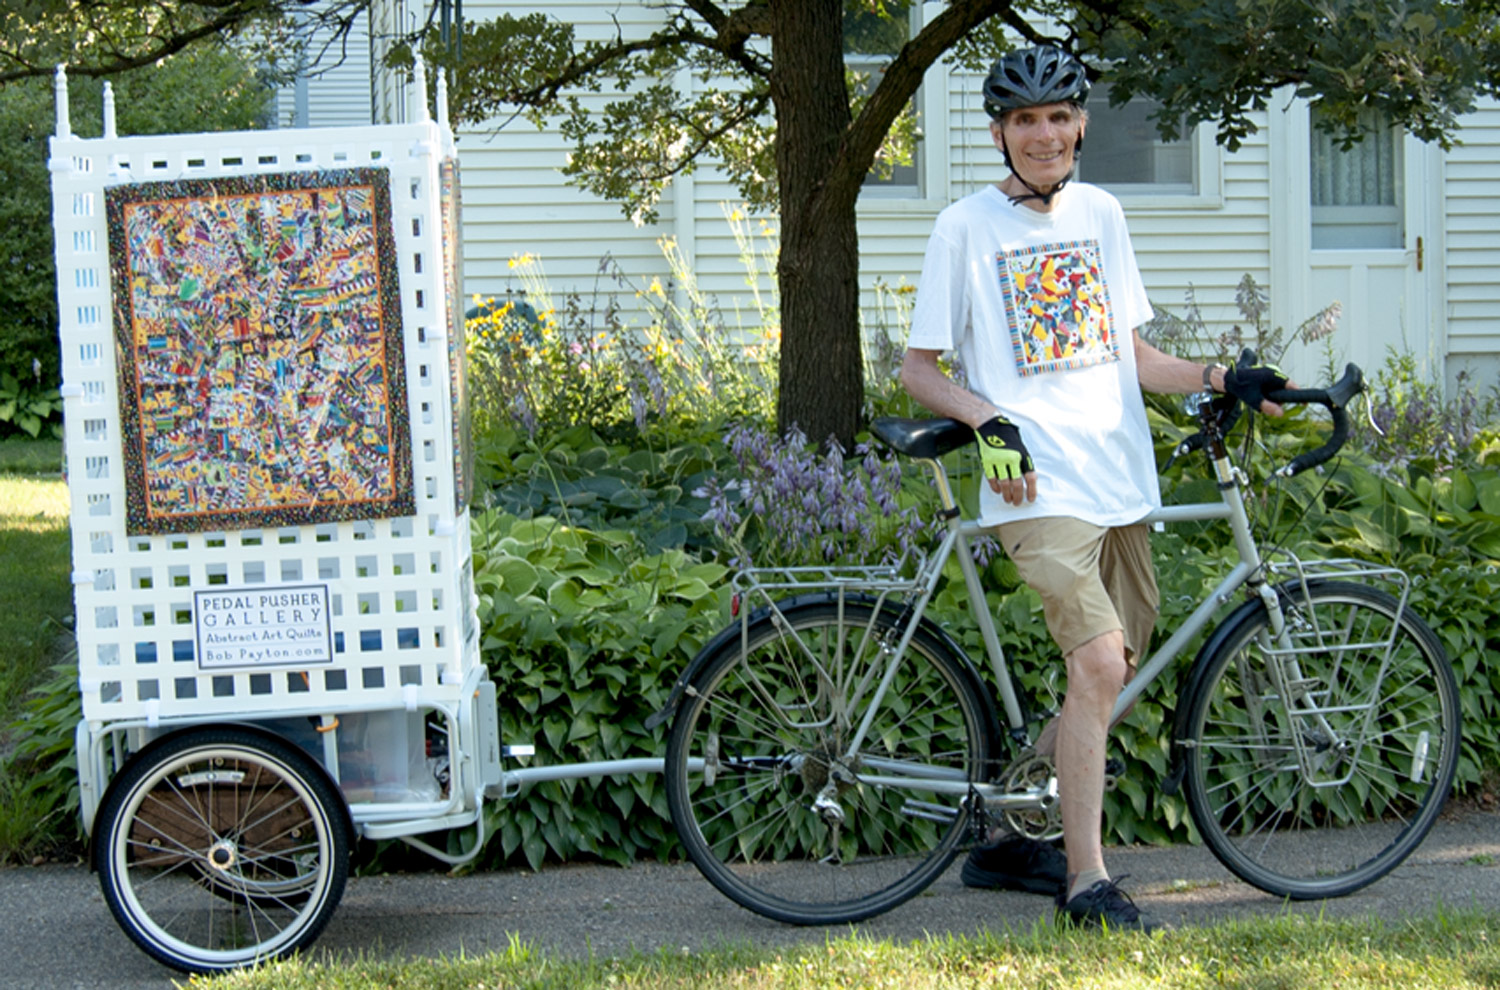 Bob Payton - Bicycle Art Cart - Pedal Pusher Gallery